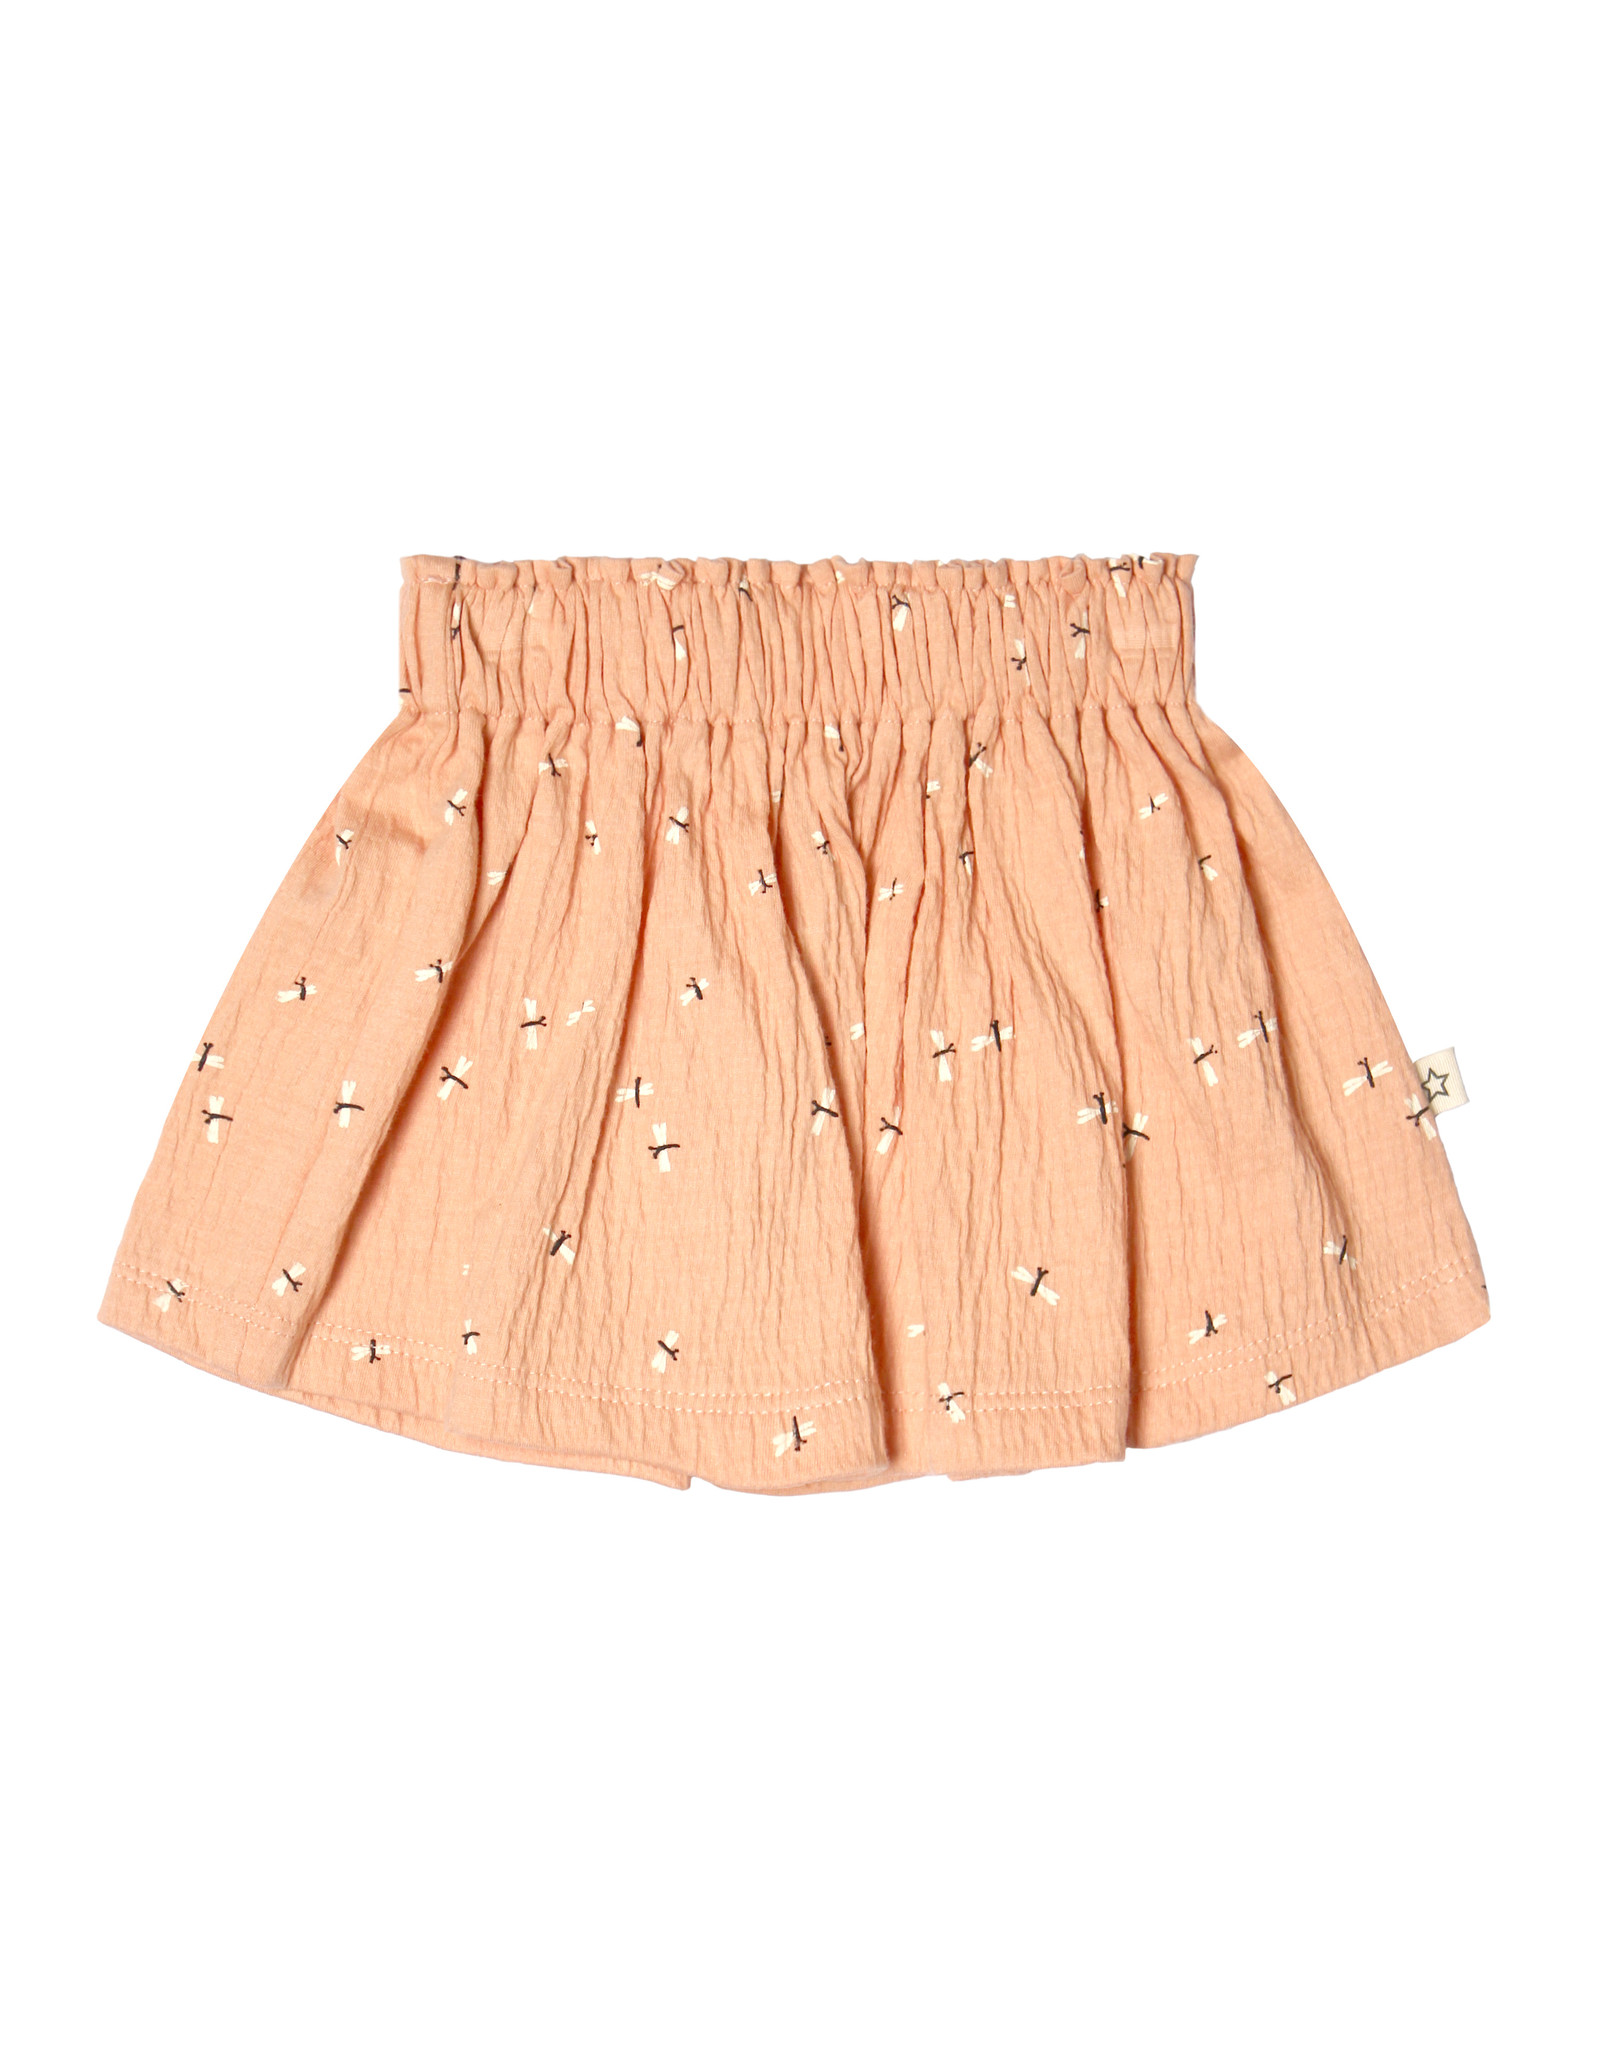 Your Wishes Dragonfly | Skirt